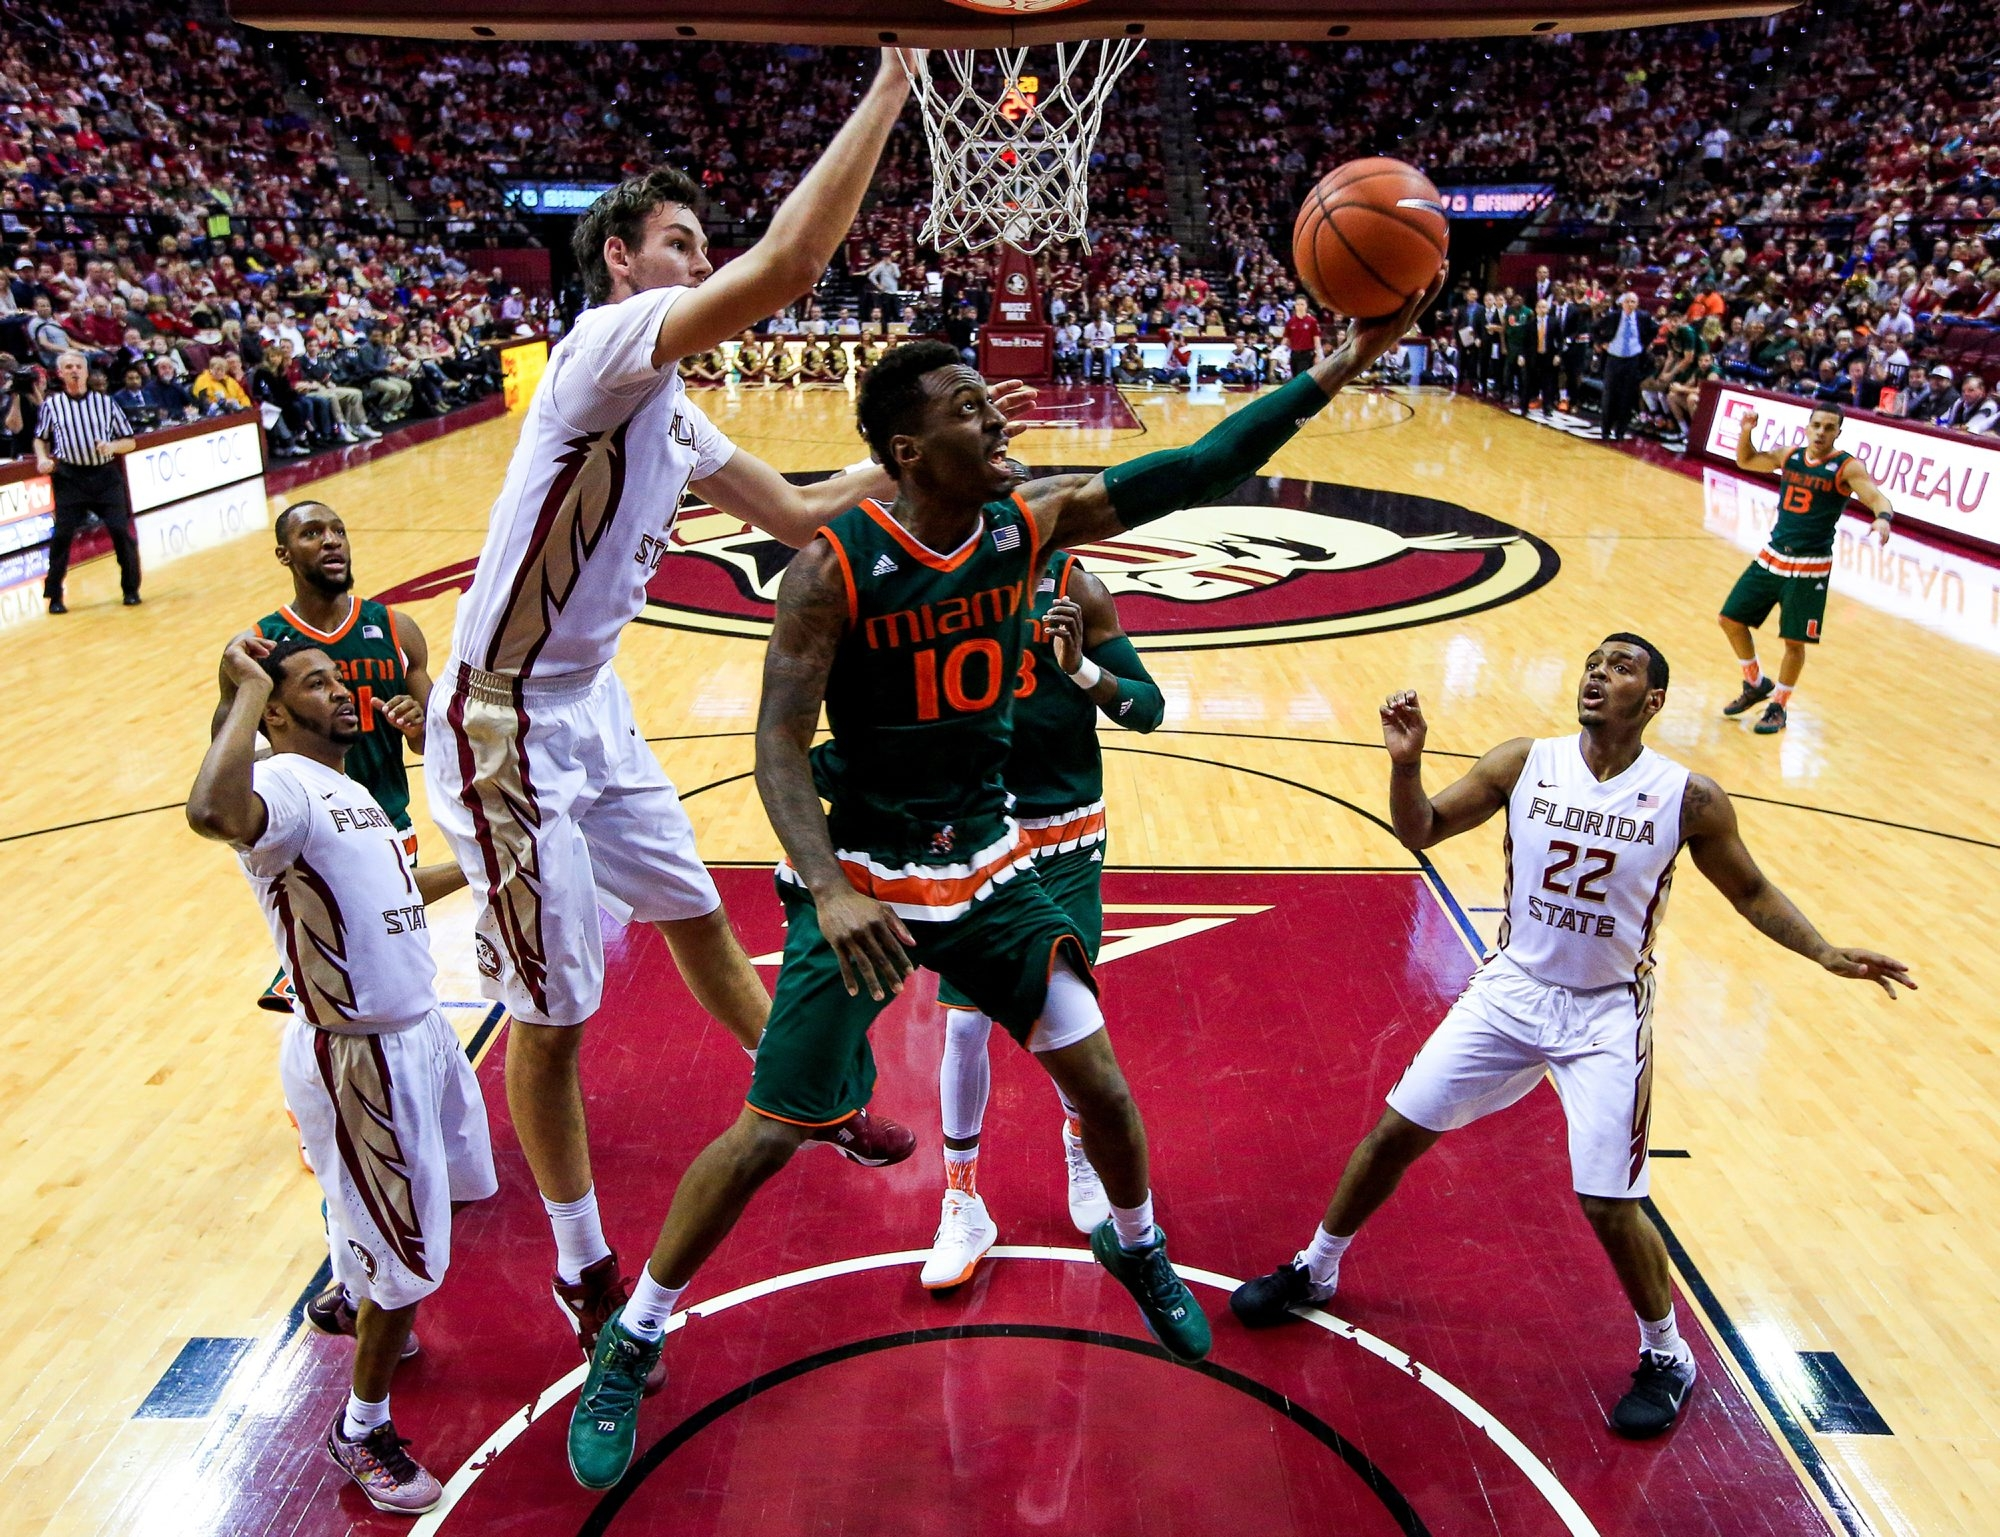 Sheldon McClellan of Miami is big guard who is getting attention from NBA scouts.